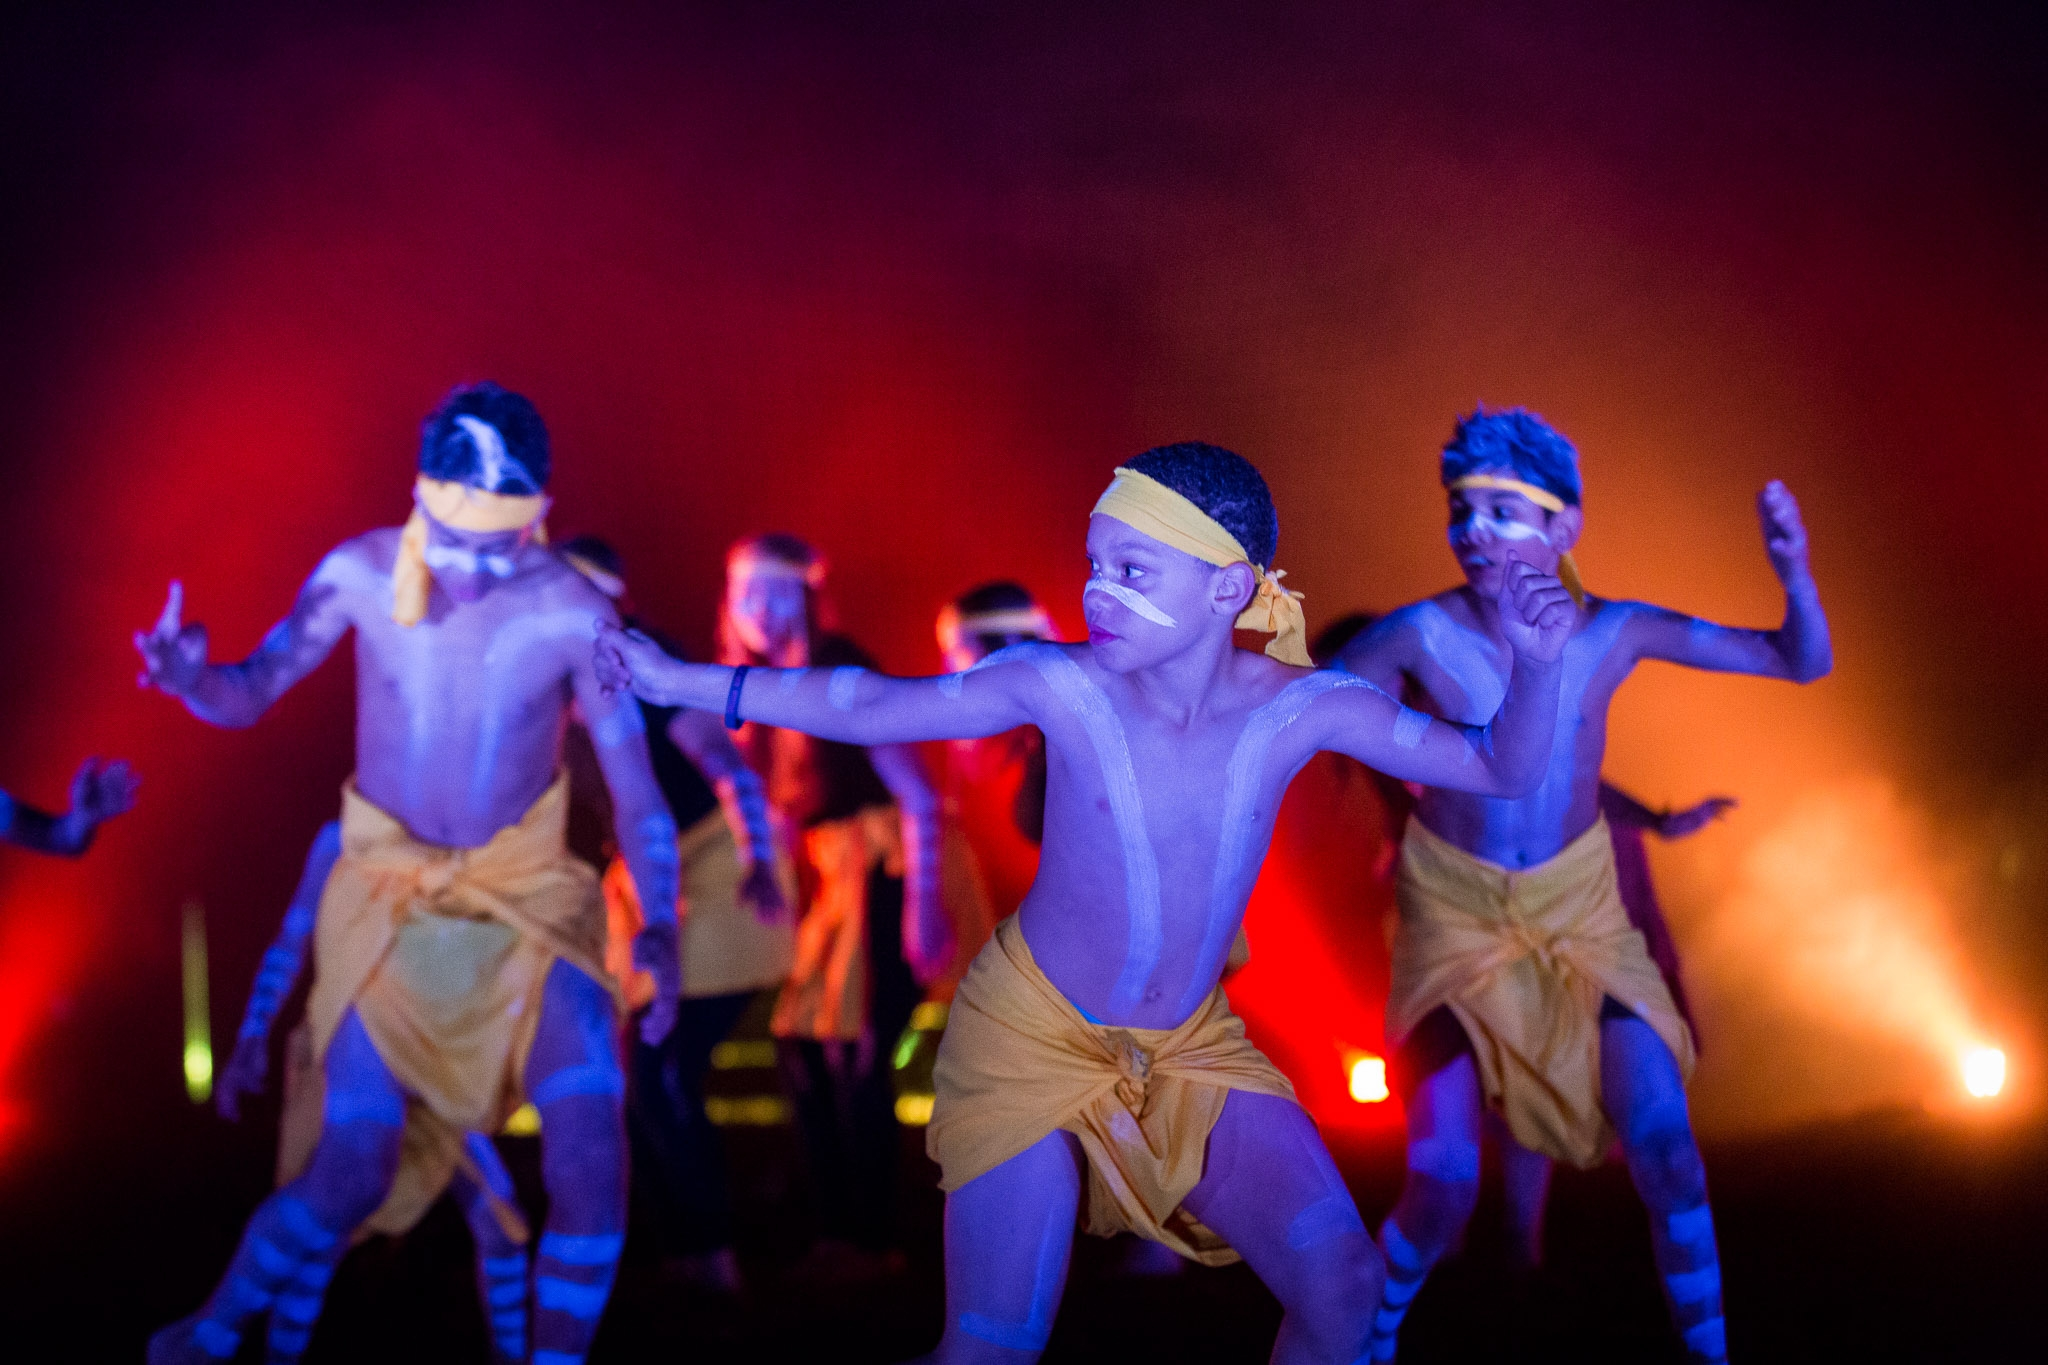 Young boys doing cultural dance